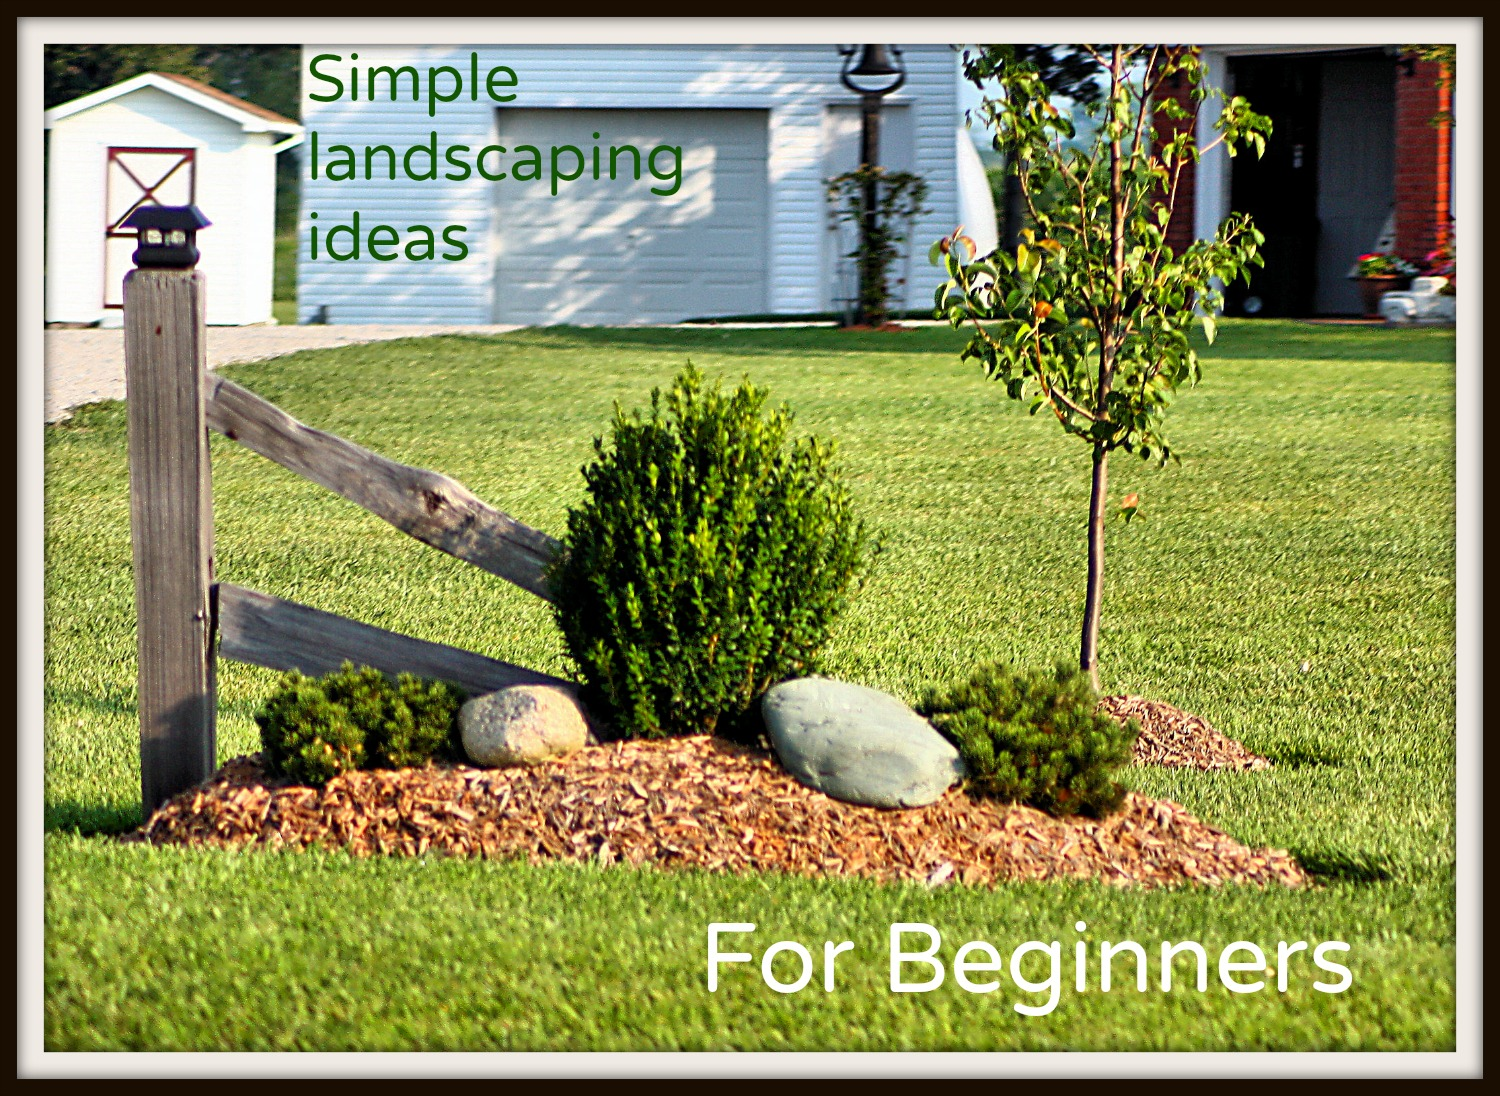 Simple Landscaping Ideas for Beginners - Frador on Simple Backyard Landscaping Ideas id=14172